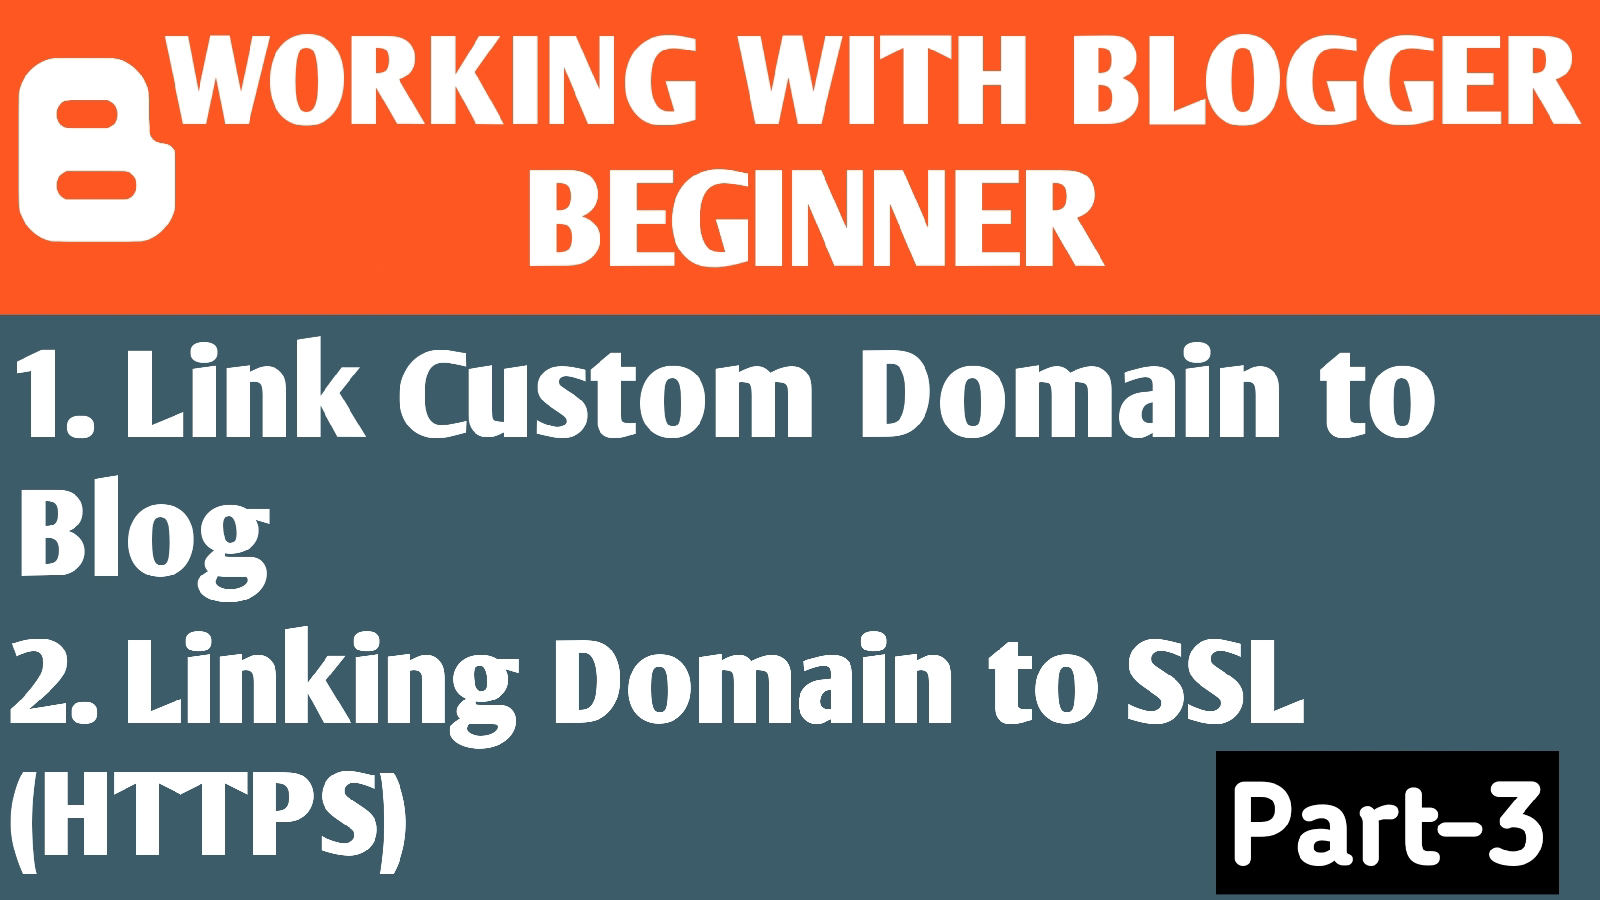 Link Custom Domain to Blogger | Linking Domain with SSL | Blogger Tutorial Part-3